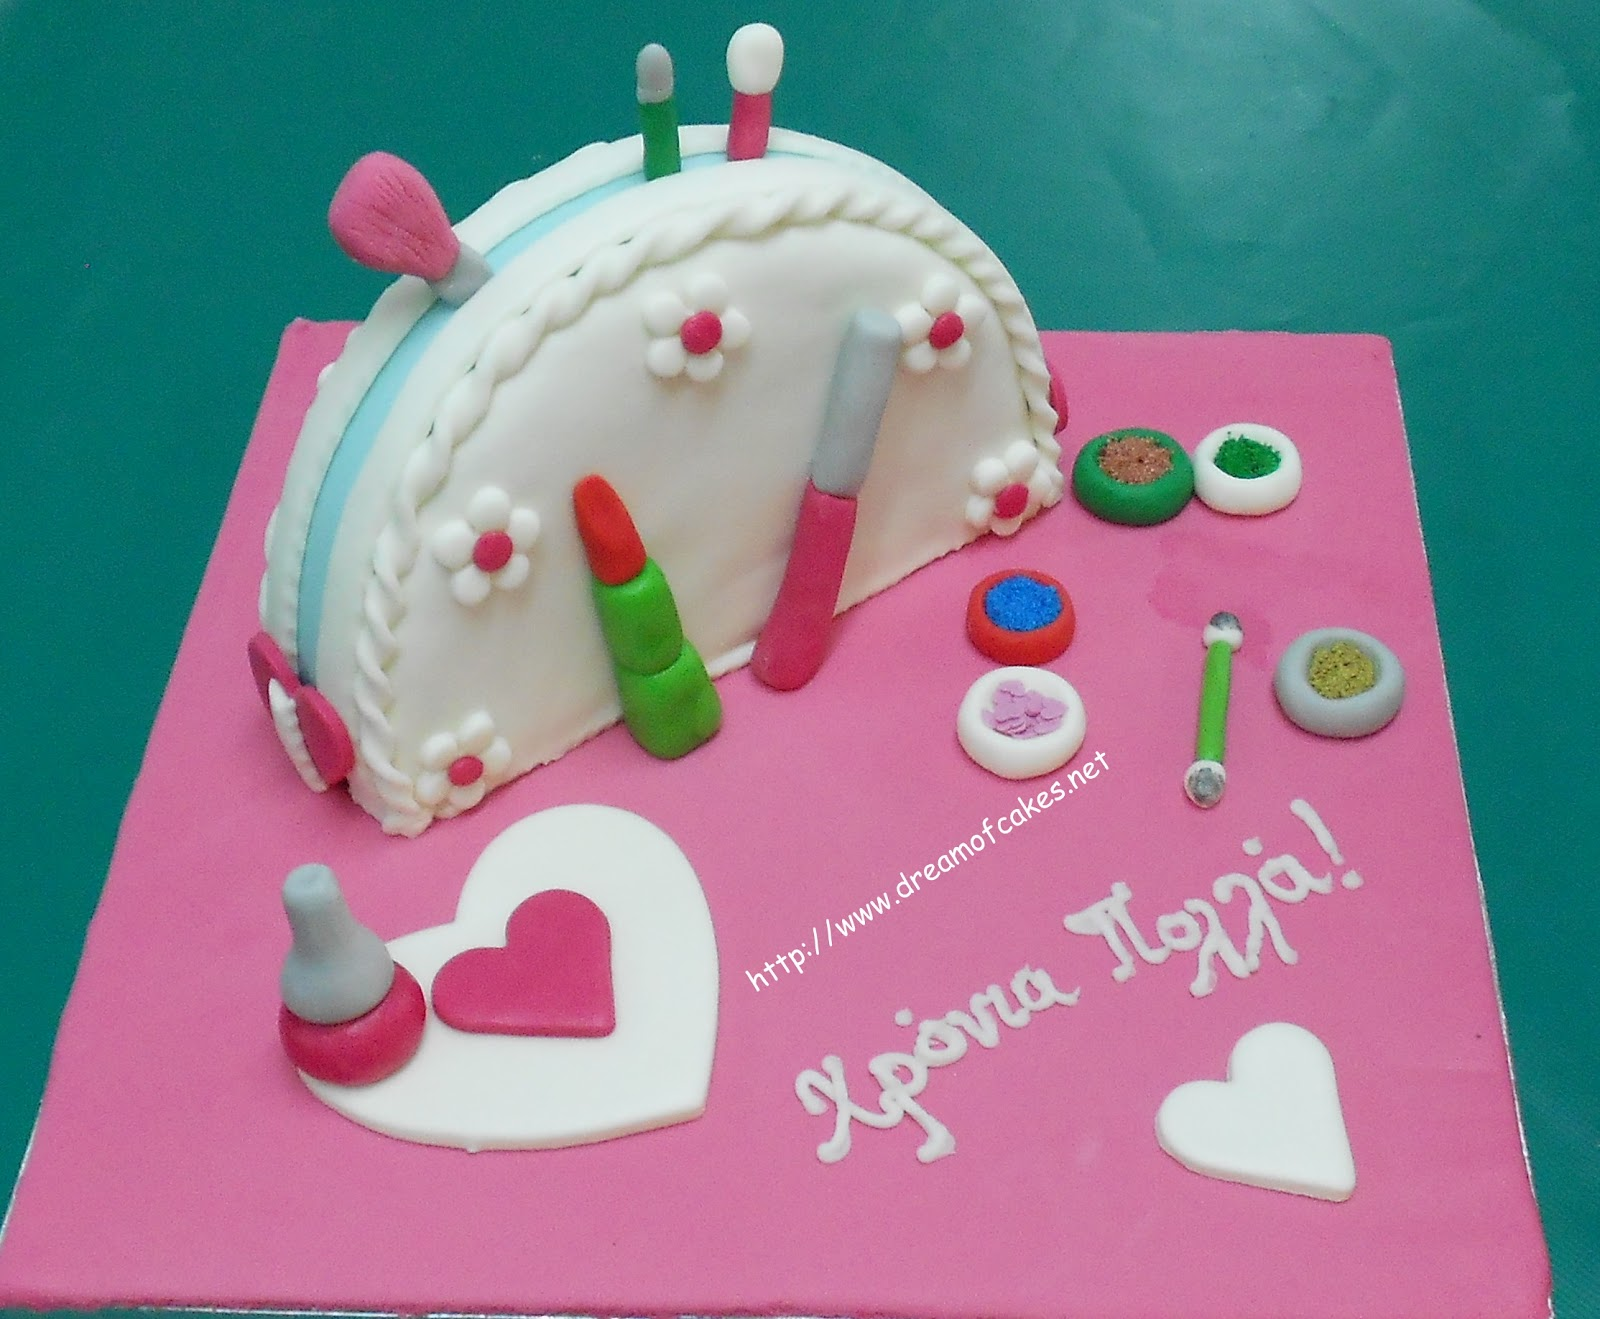 Makeup Kit Cake Design : Dream of Cakes: Makeup Kit Birthday Cakes (Giveaway)